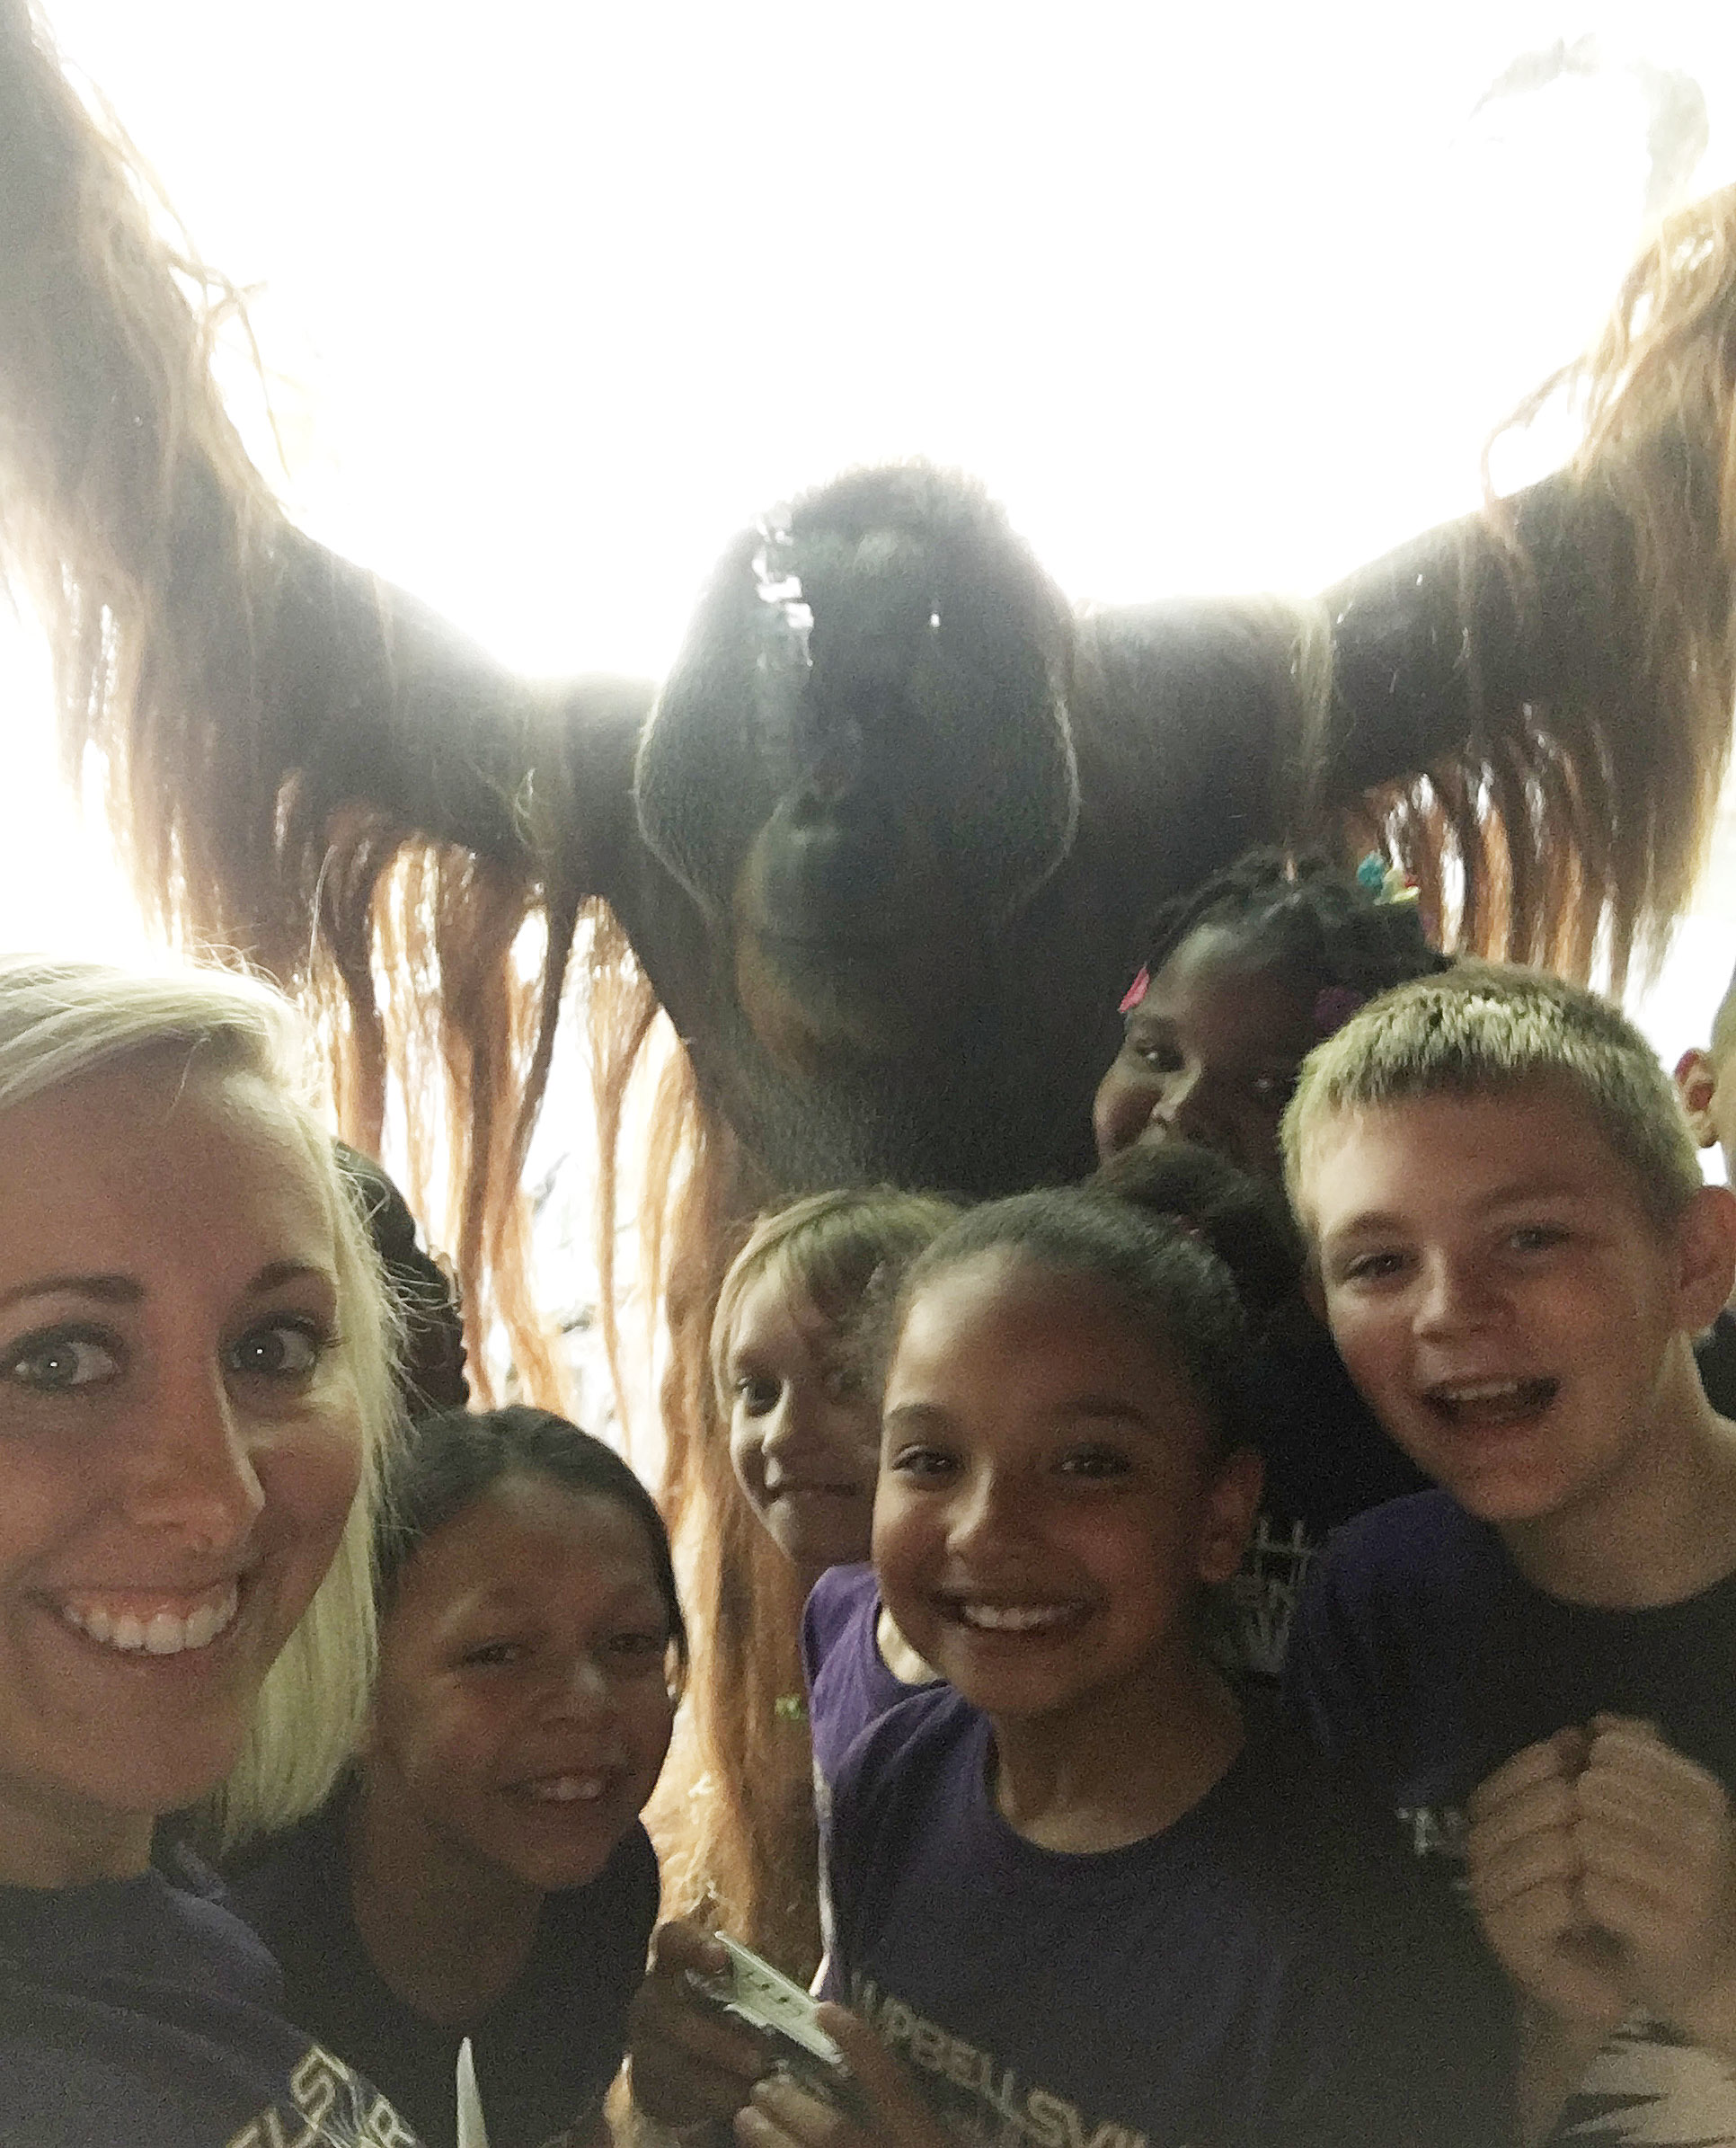 CES third-grade teacher Hannah Jones takes a photo with her students – and a gorilla.